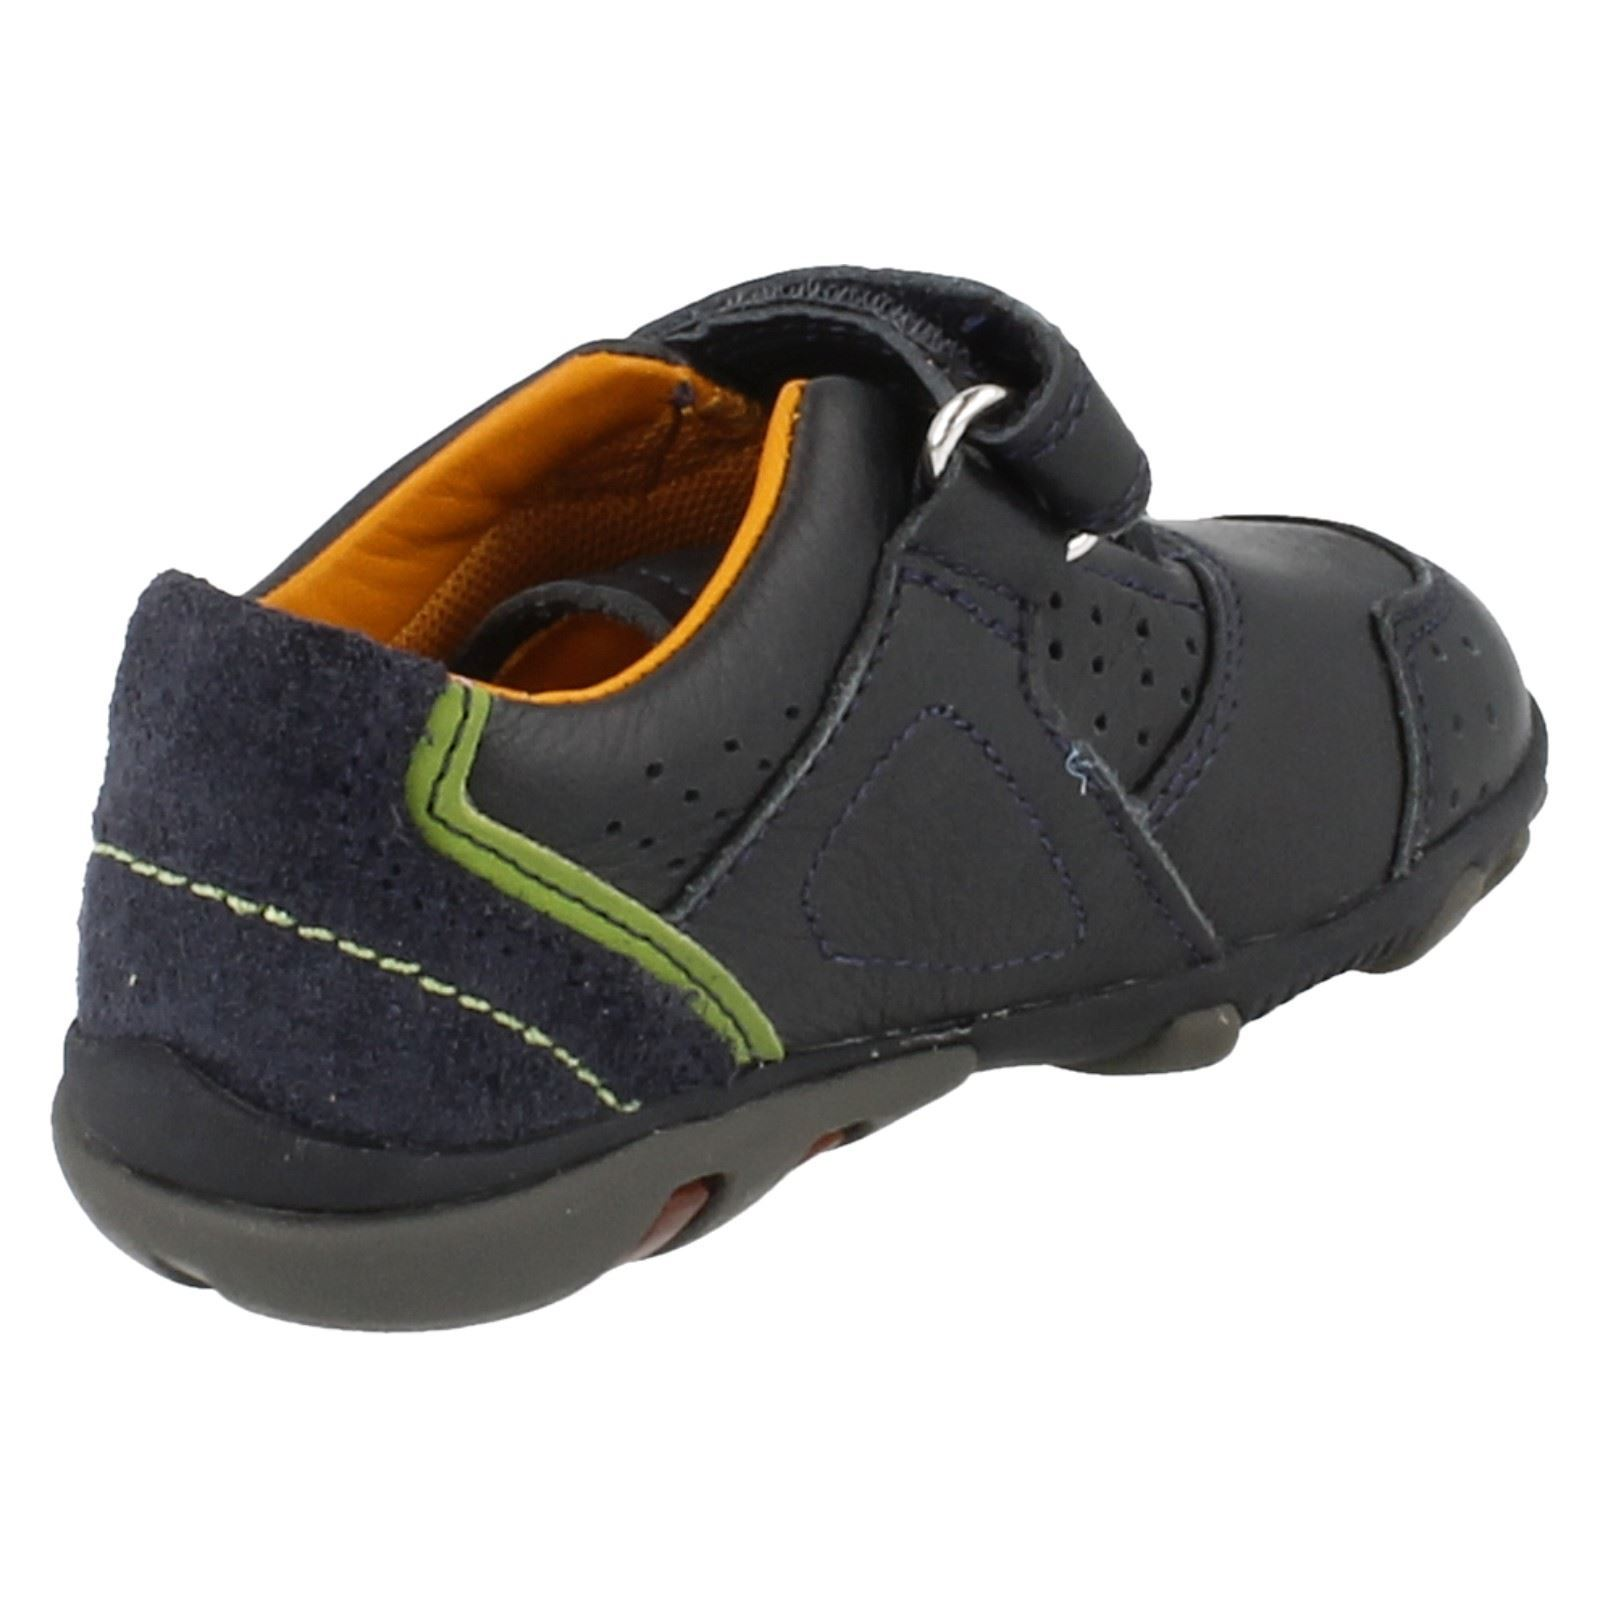 Clarks Boys First Shoes - Top Class